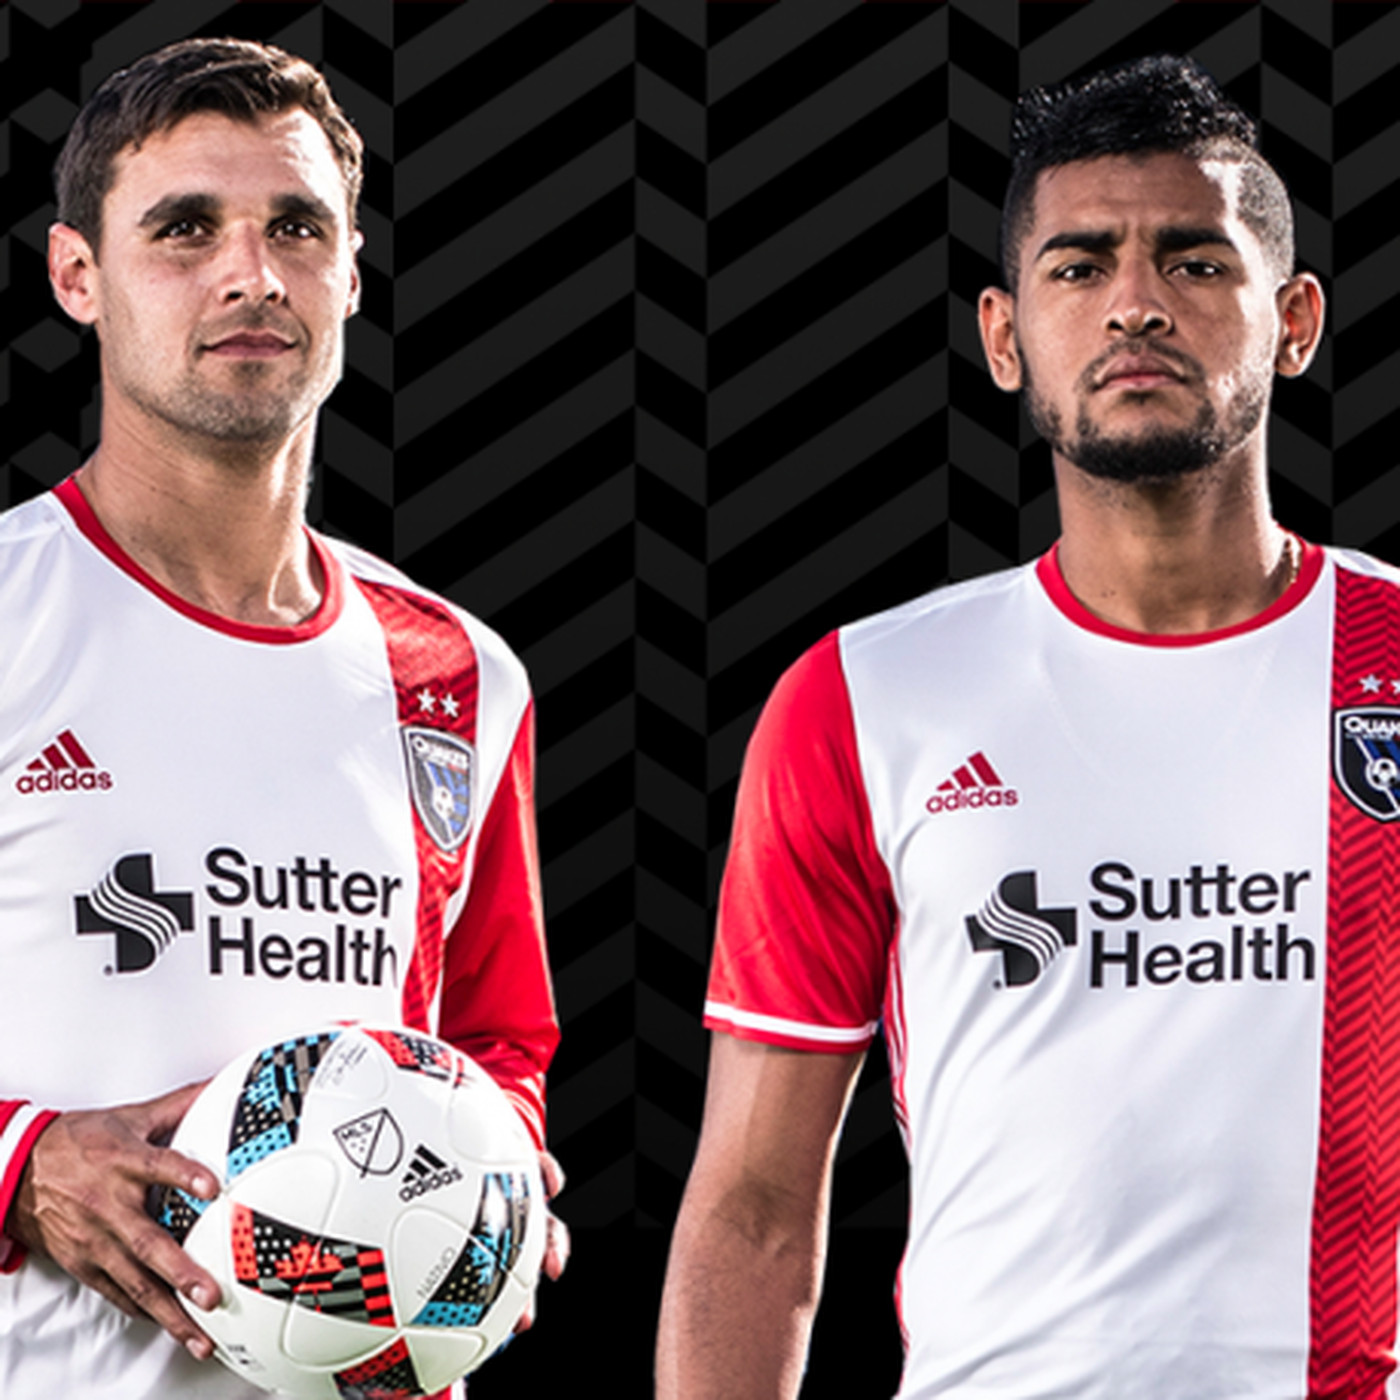 26becad5f49 San Jose Earthquakes 2016 away jersey a mix of white and red ...